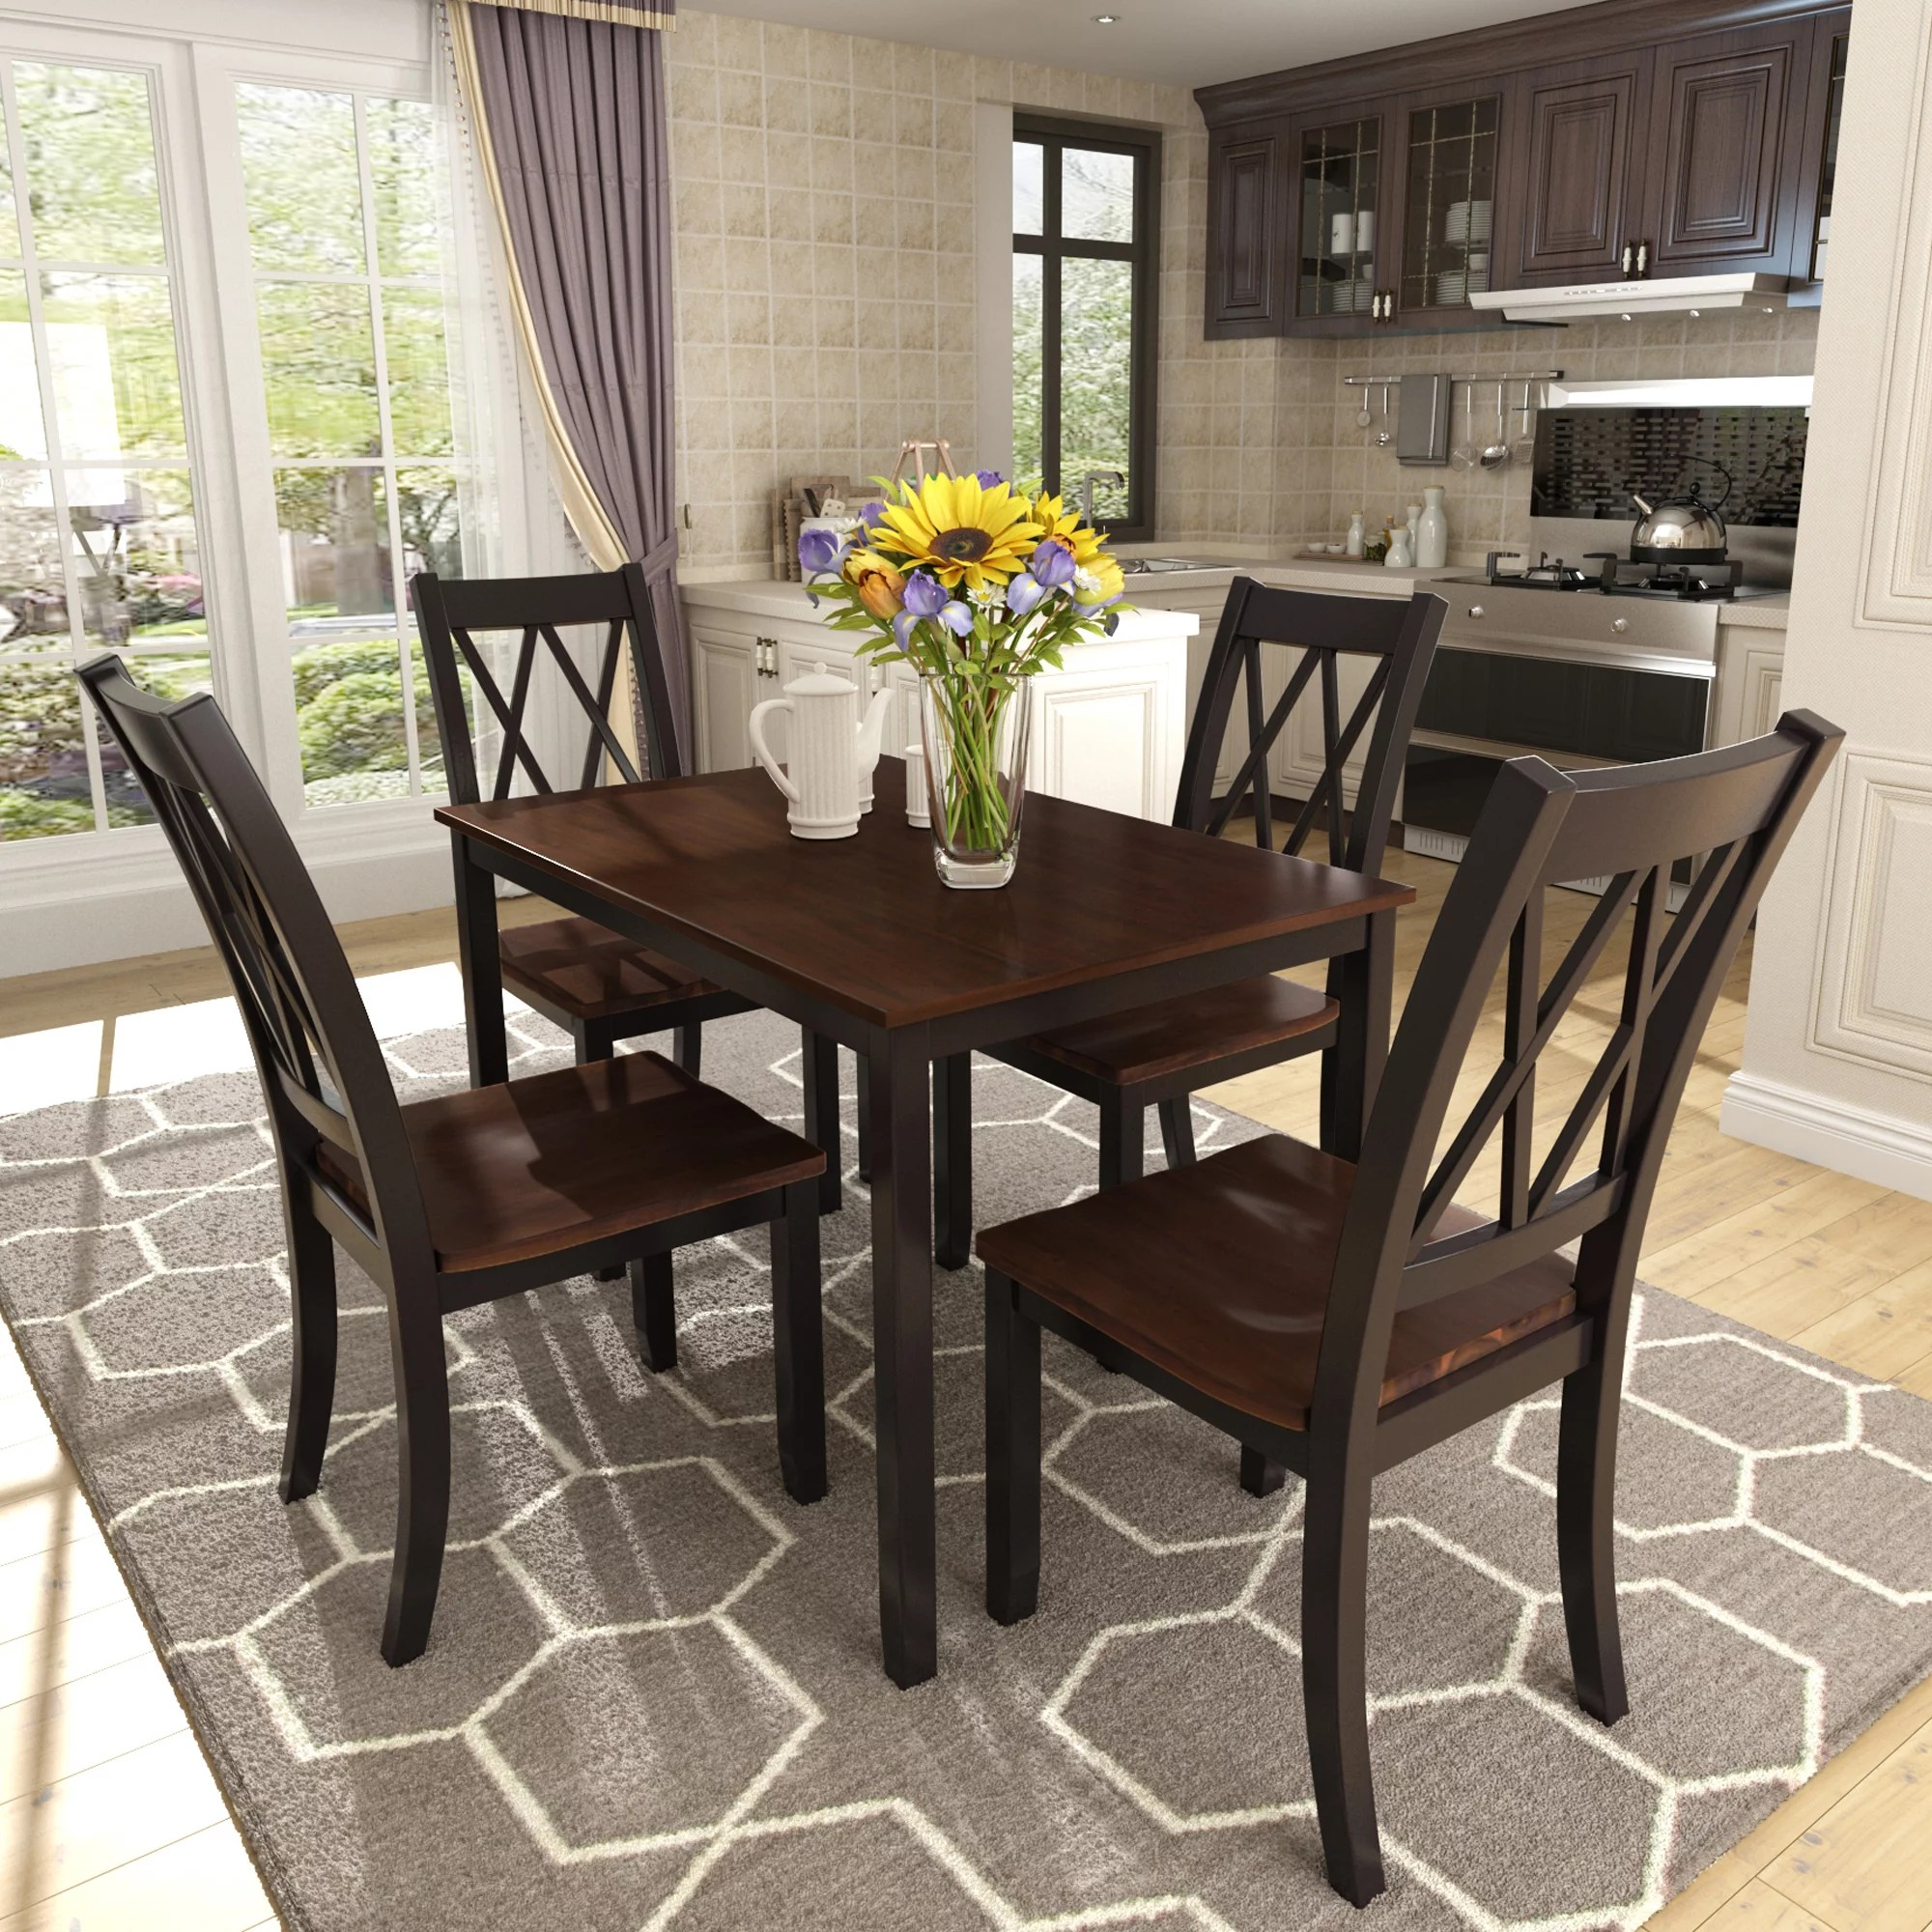 Dining Set Kitchen Table With 4 Pieces Chairs Smooth Surface Wood Dinette Set Solid Acacia Wood Rectangular Breakfast Table With Solid Wood Legs For Dining Room Living Room Kitchen Black S8057